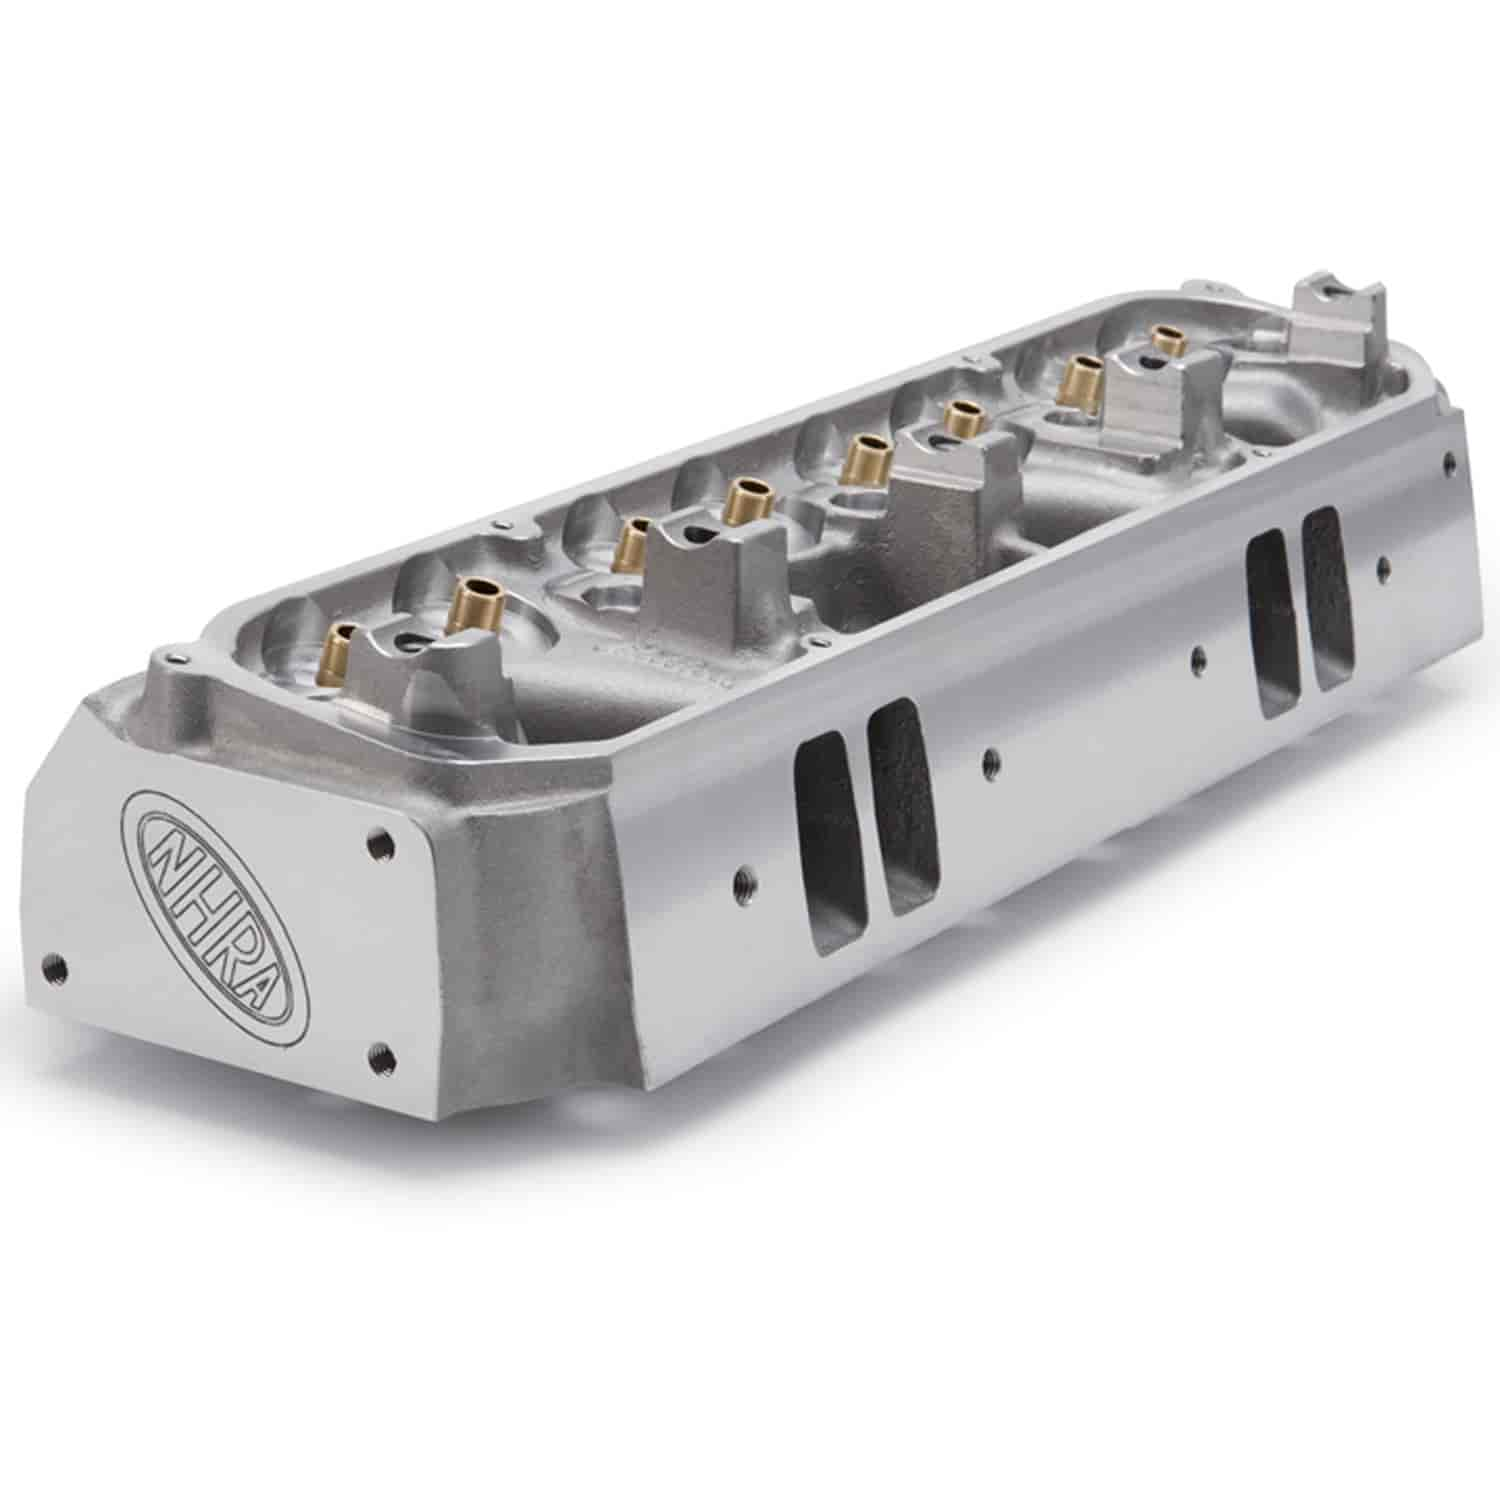 Edelbrock 60917 Nhra Performer Rpm Cylinder Head For Big Block Fuel Pump Relay Wiring Diagram